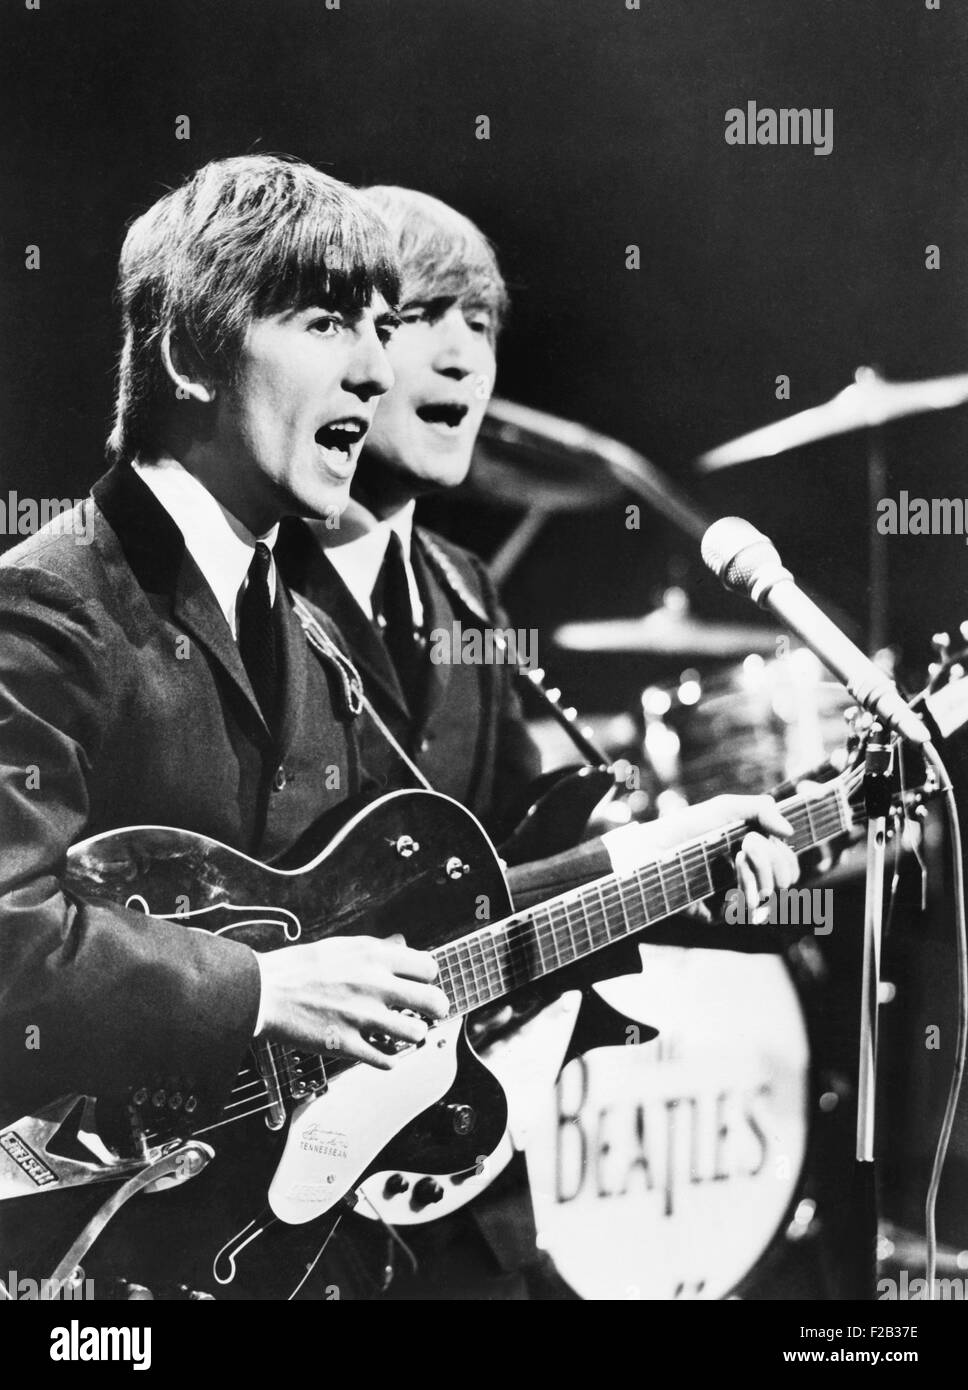 George Harrison (left) and John Lennon of the Beatles. Ca. 1964. (CSU 2015 7 276) Stock Photo